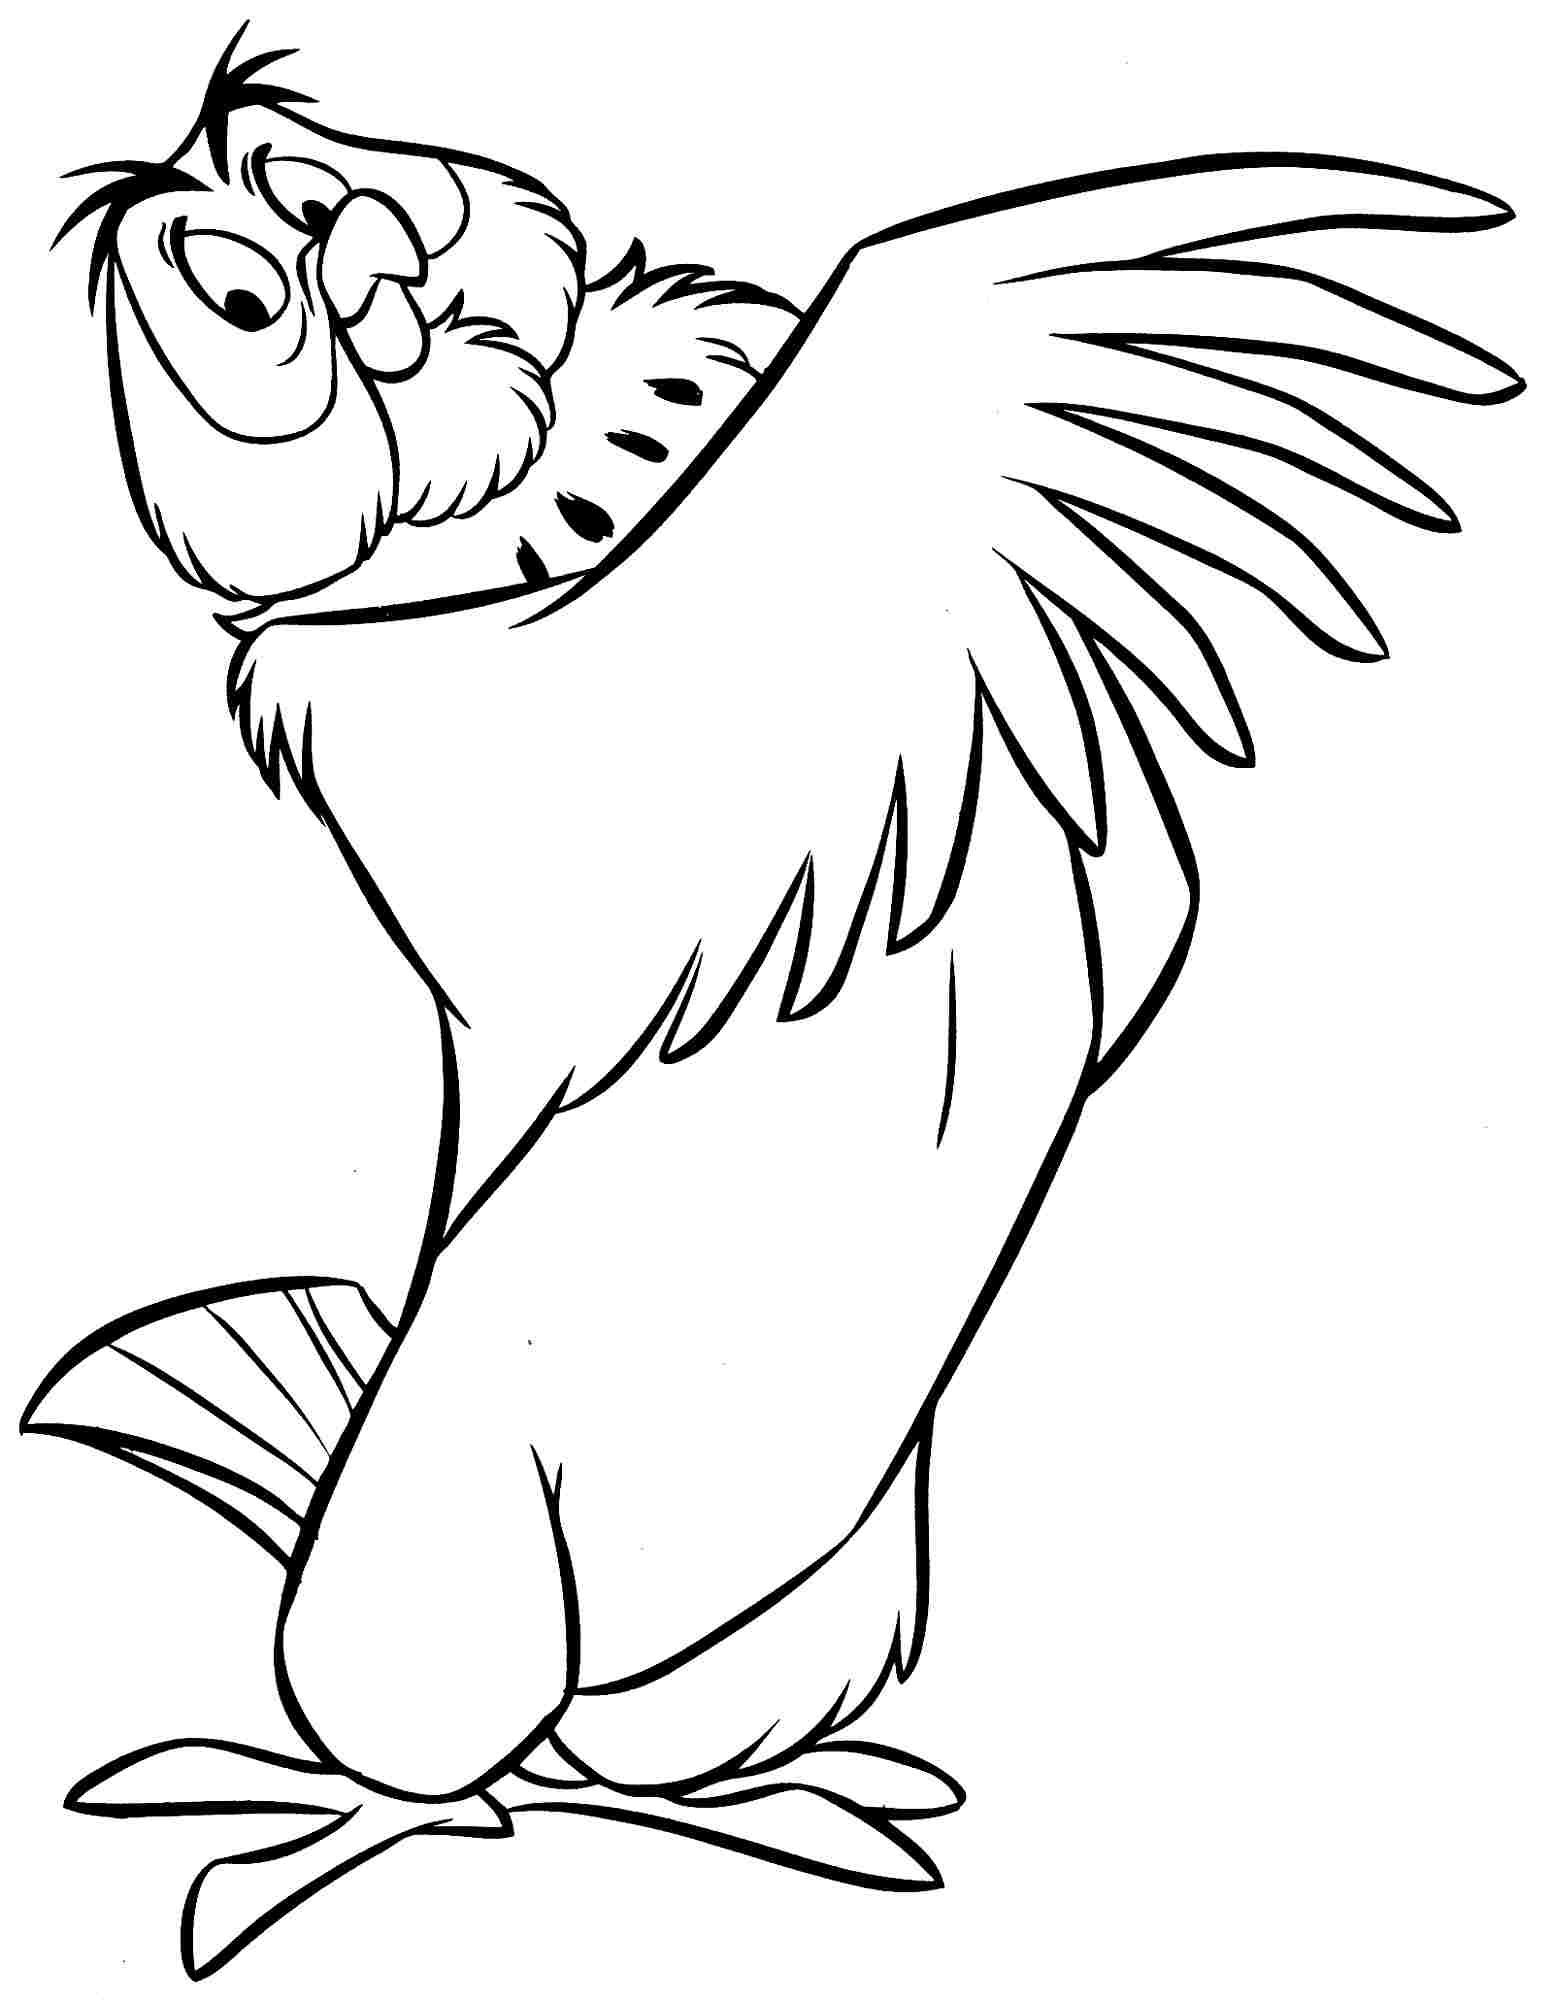 Winnie The Pooh Rabbit Coloring Pages Owl Outline Winnie The Pooh Google Search Wood Winnie The Pooh Drawing Owl Winnie The Pooh Winnie The Pooh Coloring Pages